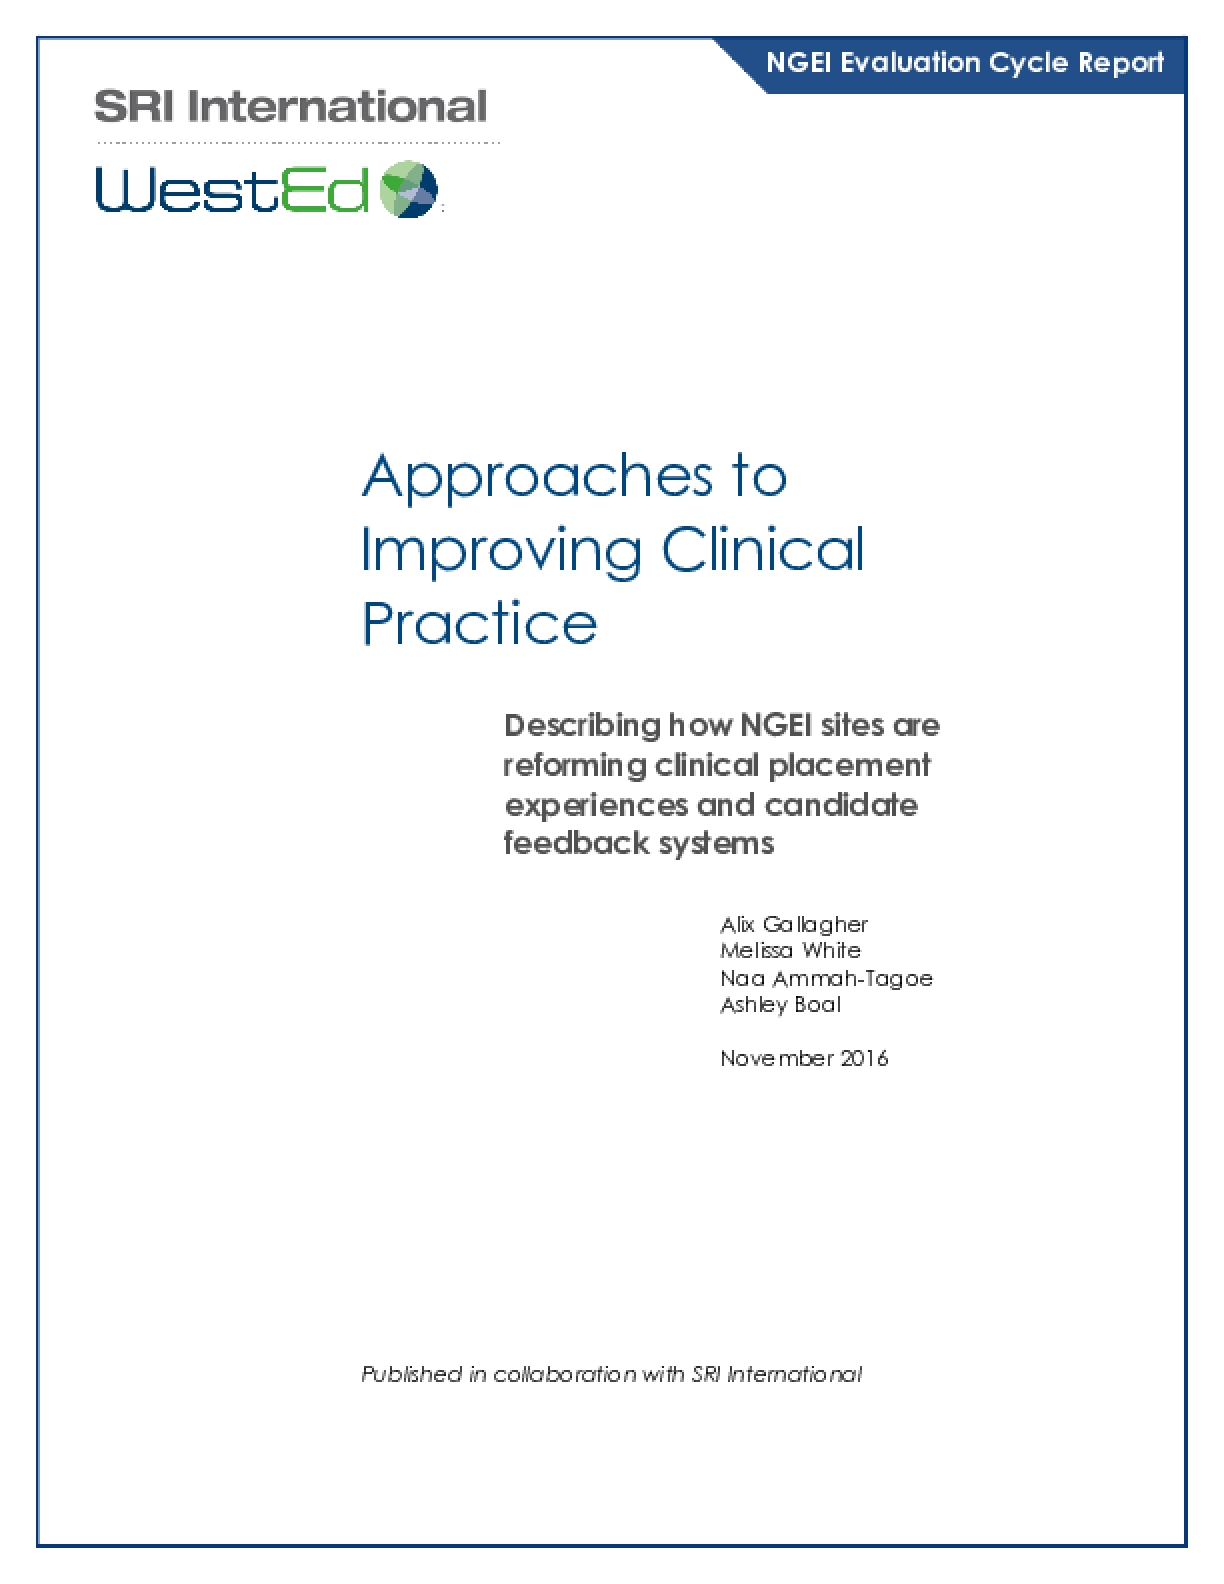 Approaches to Improving Clinical Practice: Describing how NGEI sites are reforming clinical placement experiences and candidate feedback systems